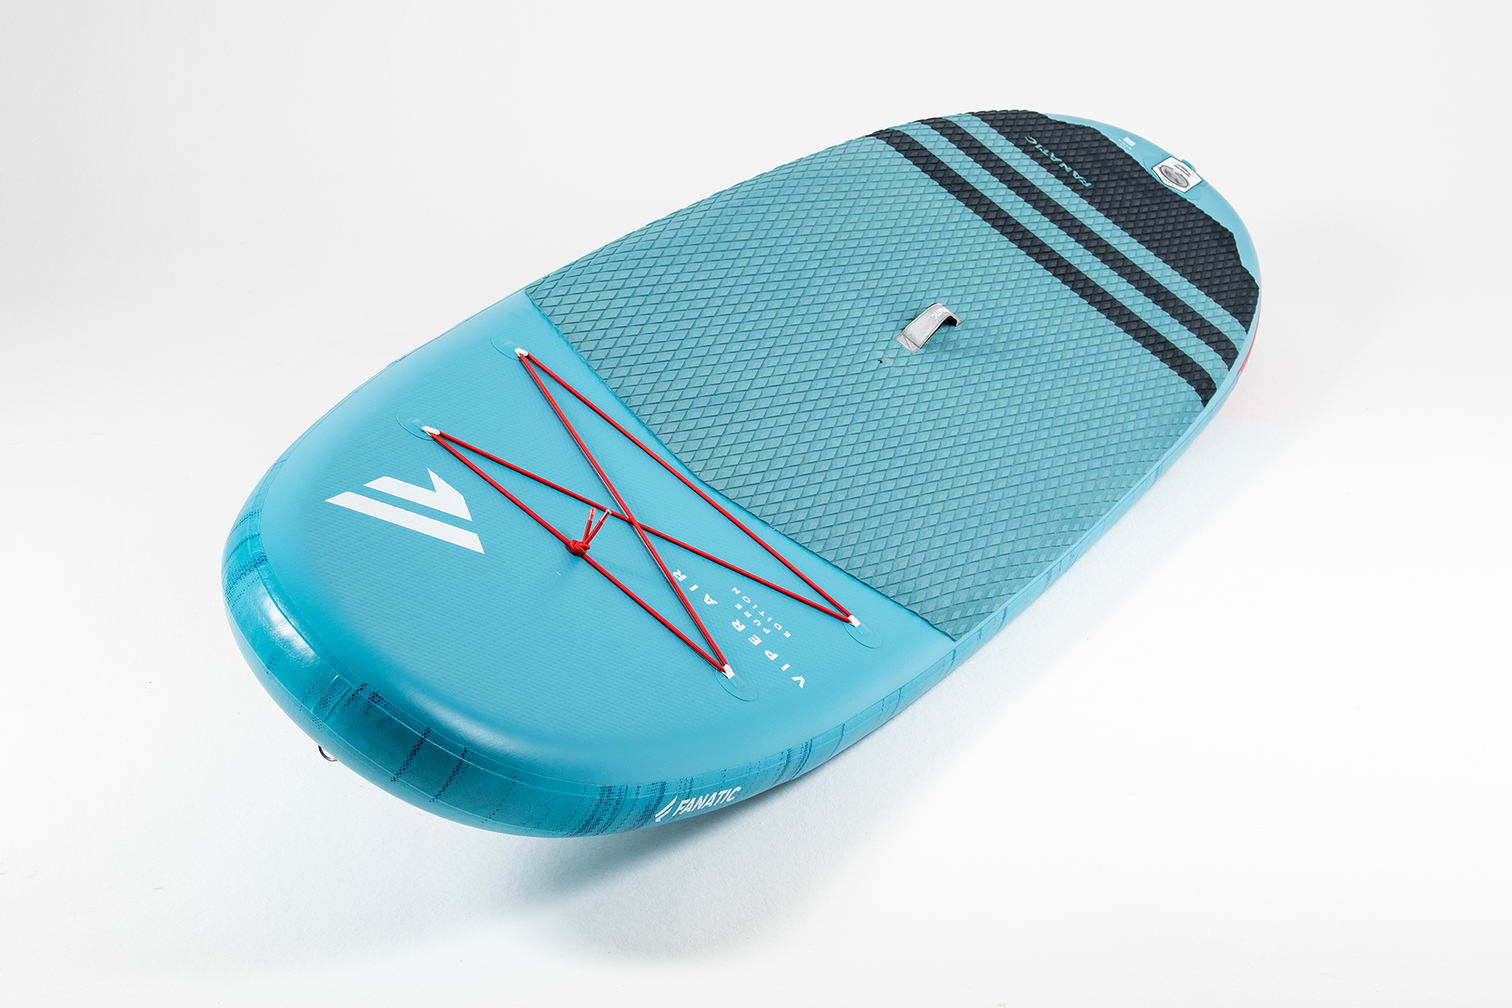 Viper Air Windsurf